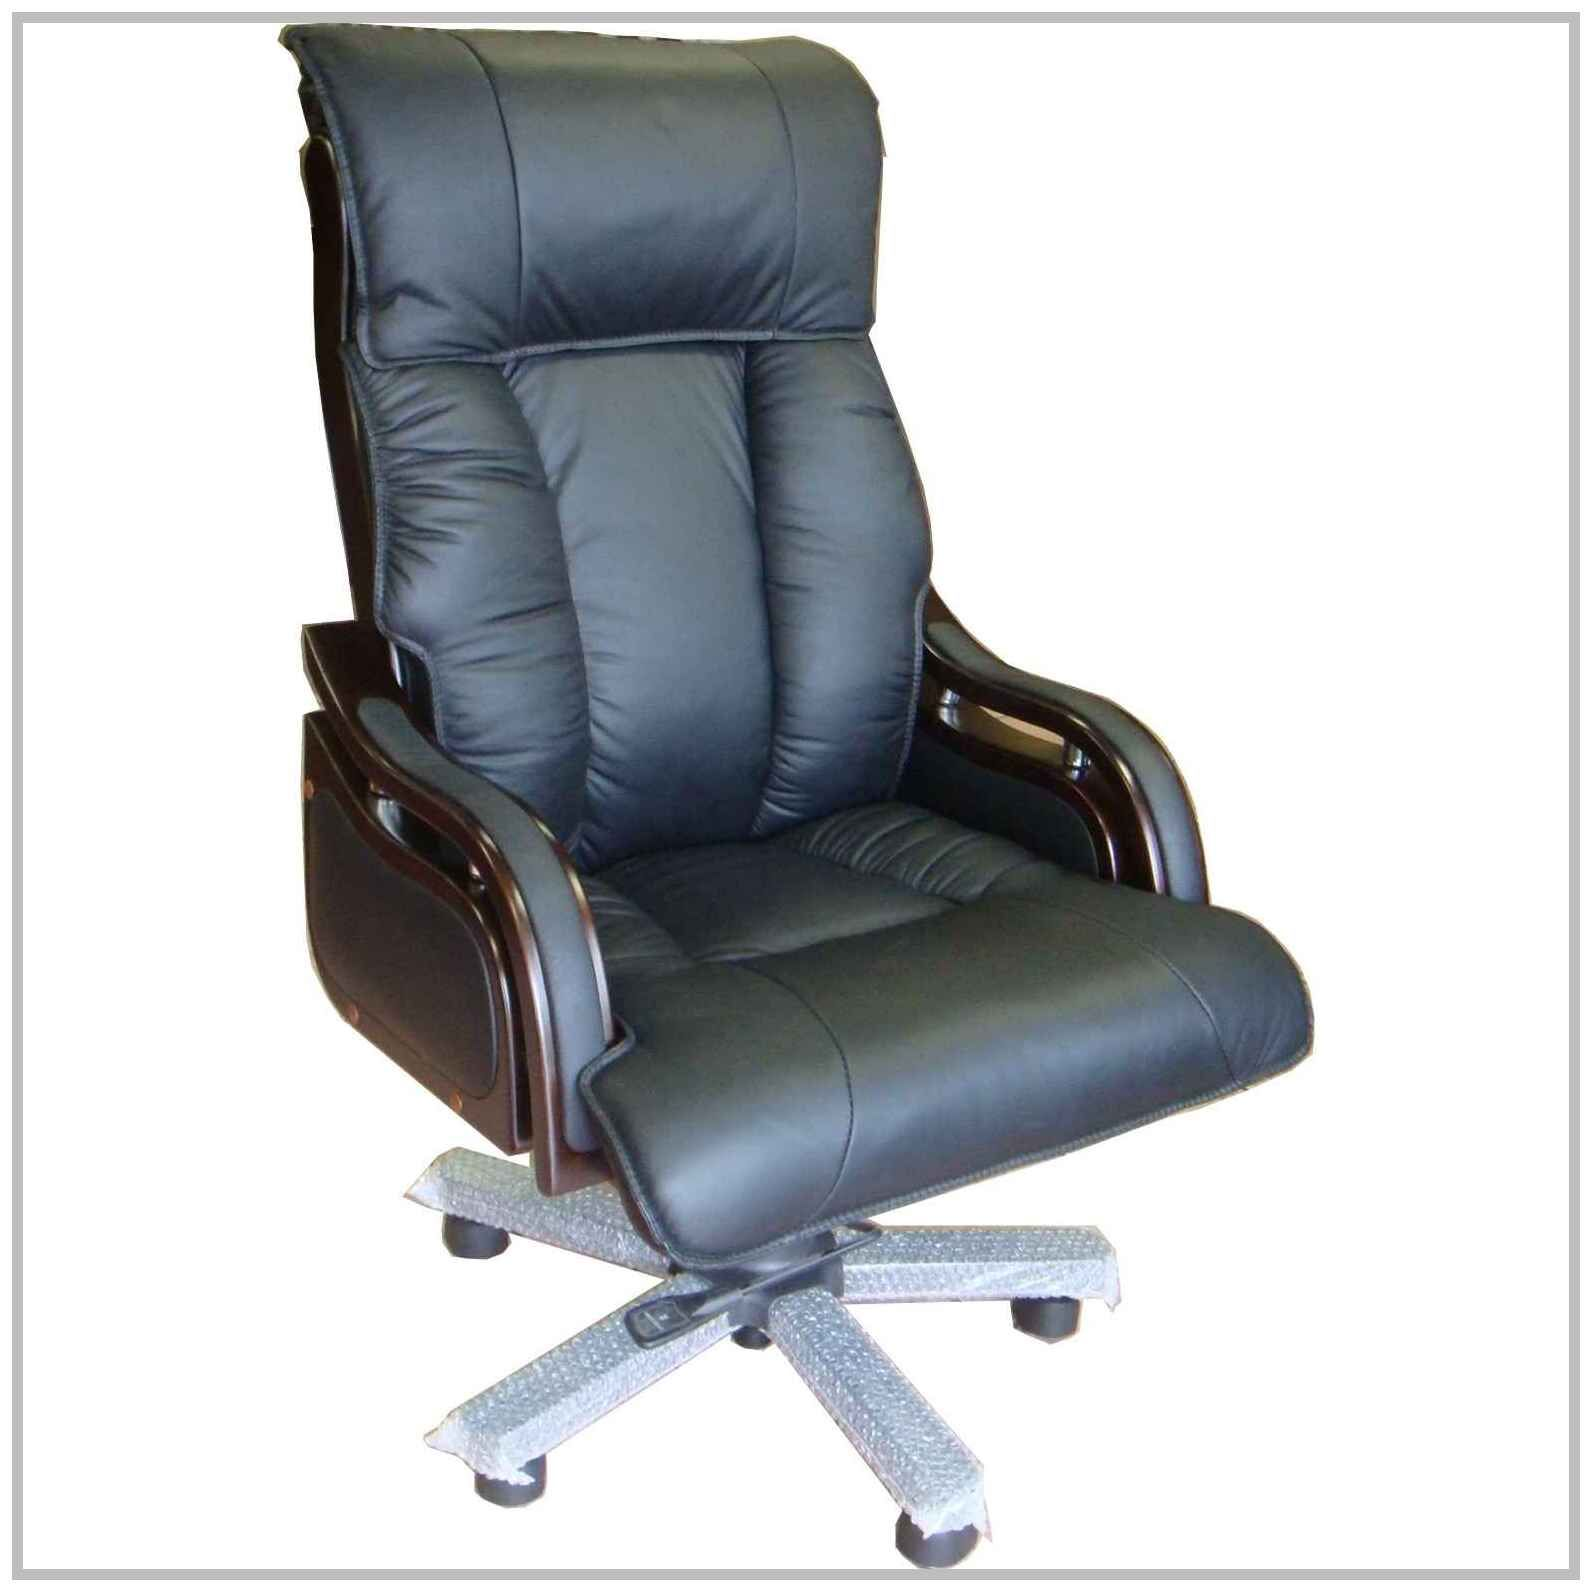 118 Reference Of Recliner Office Chair Singapore In 2020 Reclining Office Chair Office Chair Chair